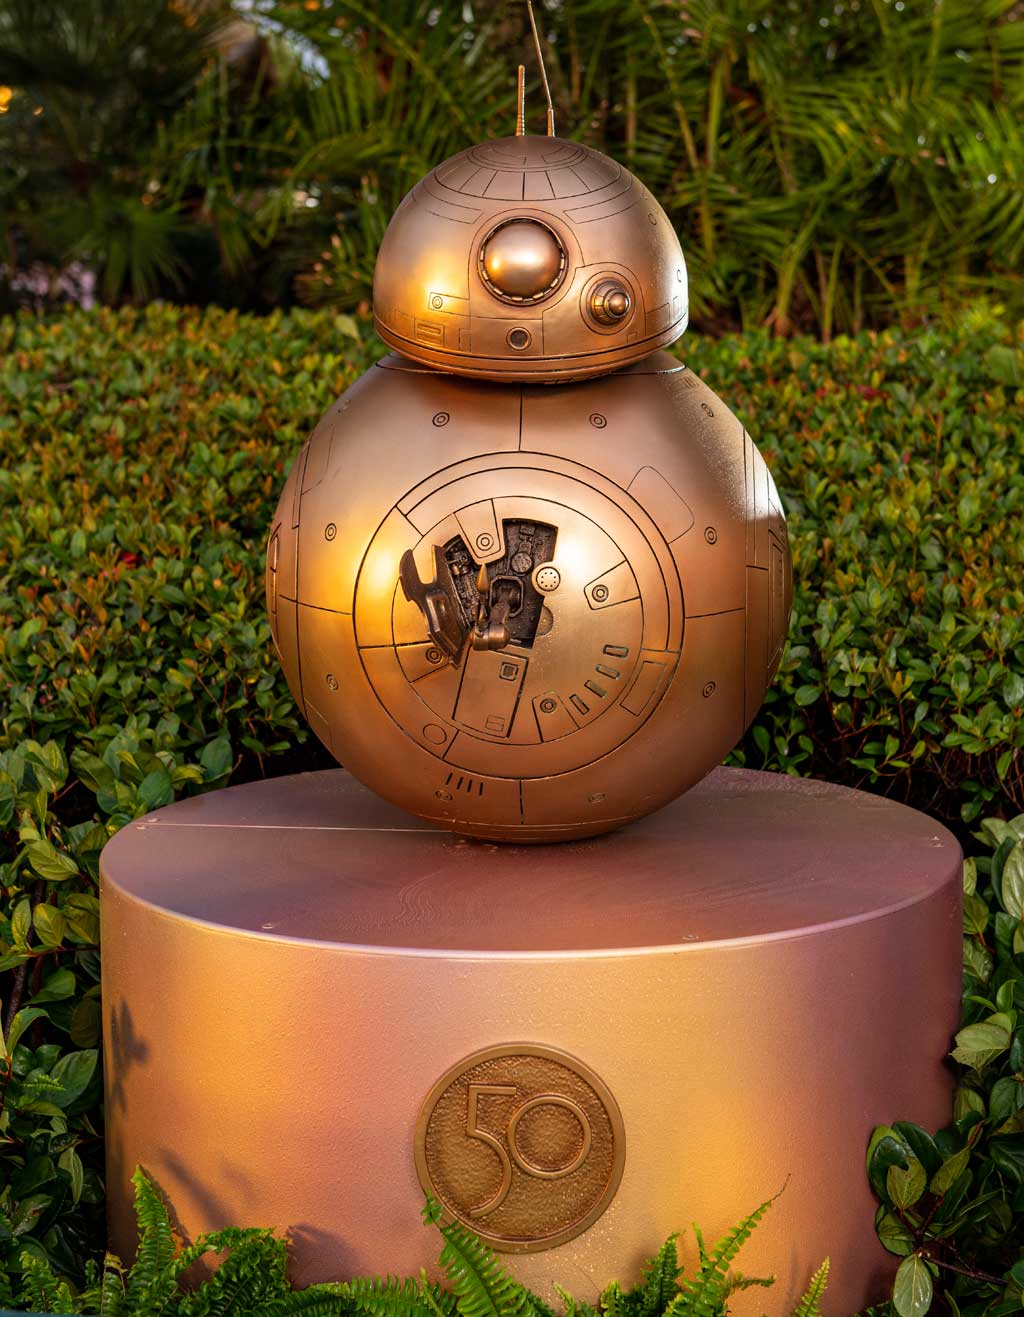 """BB-8 at Disney's Hollywood Studios is one of the """"Disney Fab 50 Character Collection"""" appearing in all four Walt Disney World Resort theme parks in Lake Buena Vista, Fla., as part of """"The World's Most Magical Celebration,"""" beginning Oct. 1, 2021, in honor of the resort's 50th anniversary. (David Roark, photographer)"""